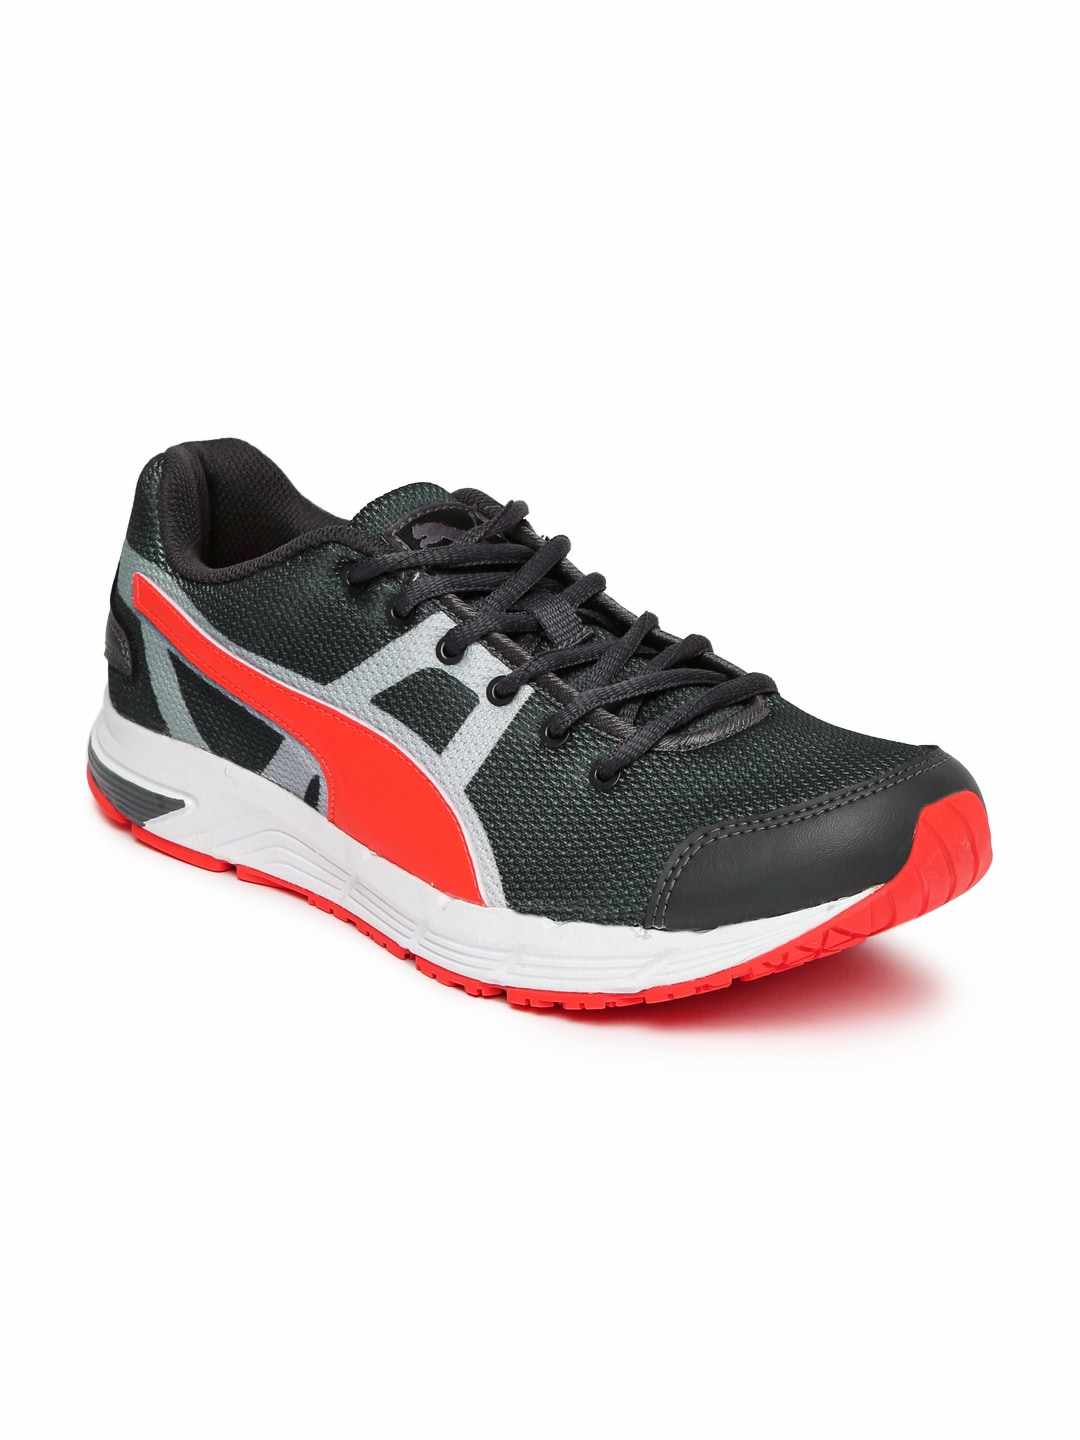 b3b447b63b4 Men Footwear - Buy Mens Footwear   Shoes Online in India - Myntra